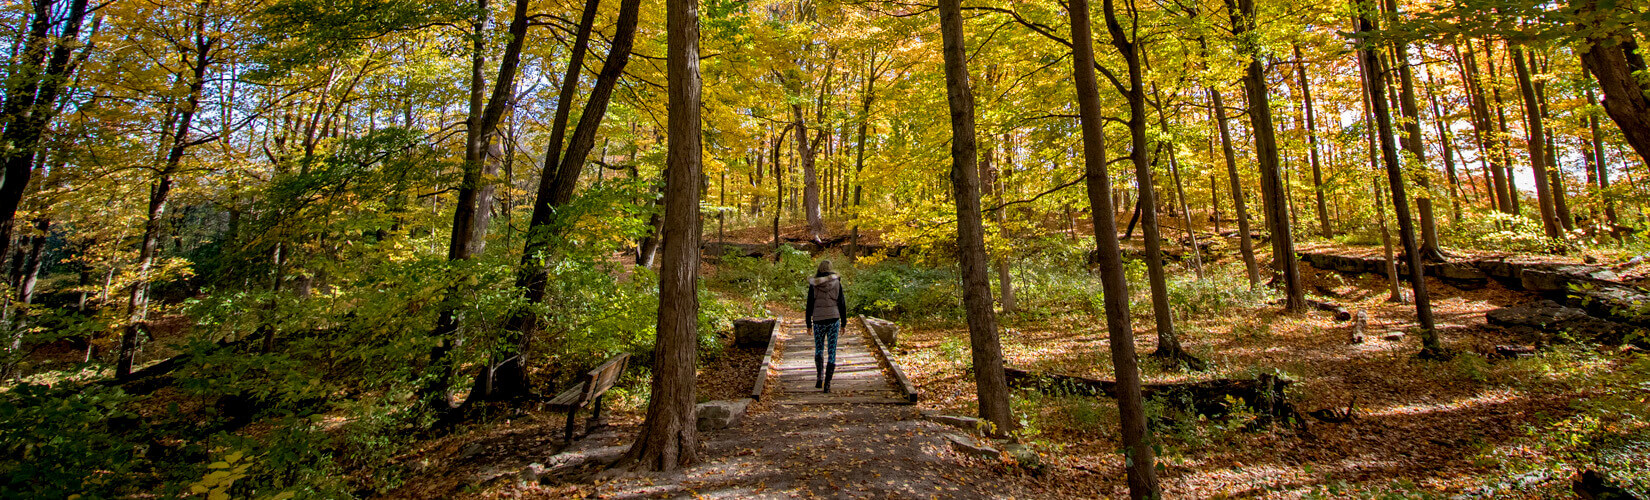 Hamilton Hiking Trails: Your Guide to the Best Hikes in Hamilton :: I've Been Bit! Travel Blog